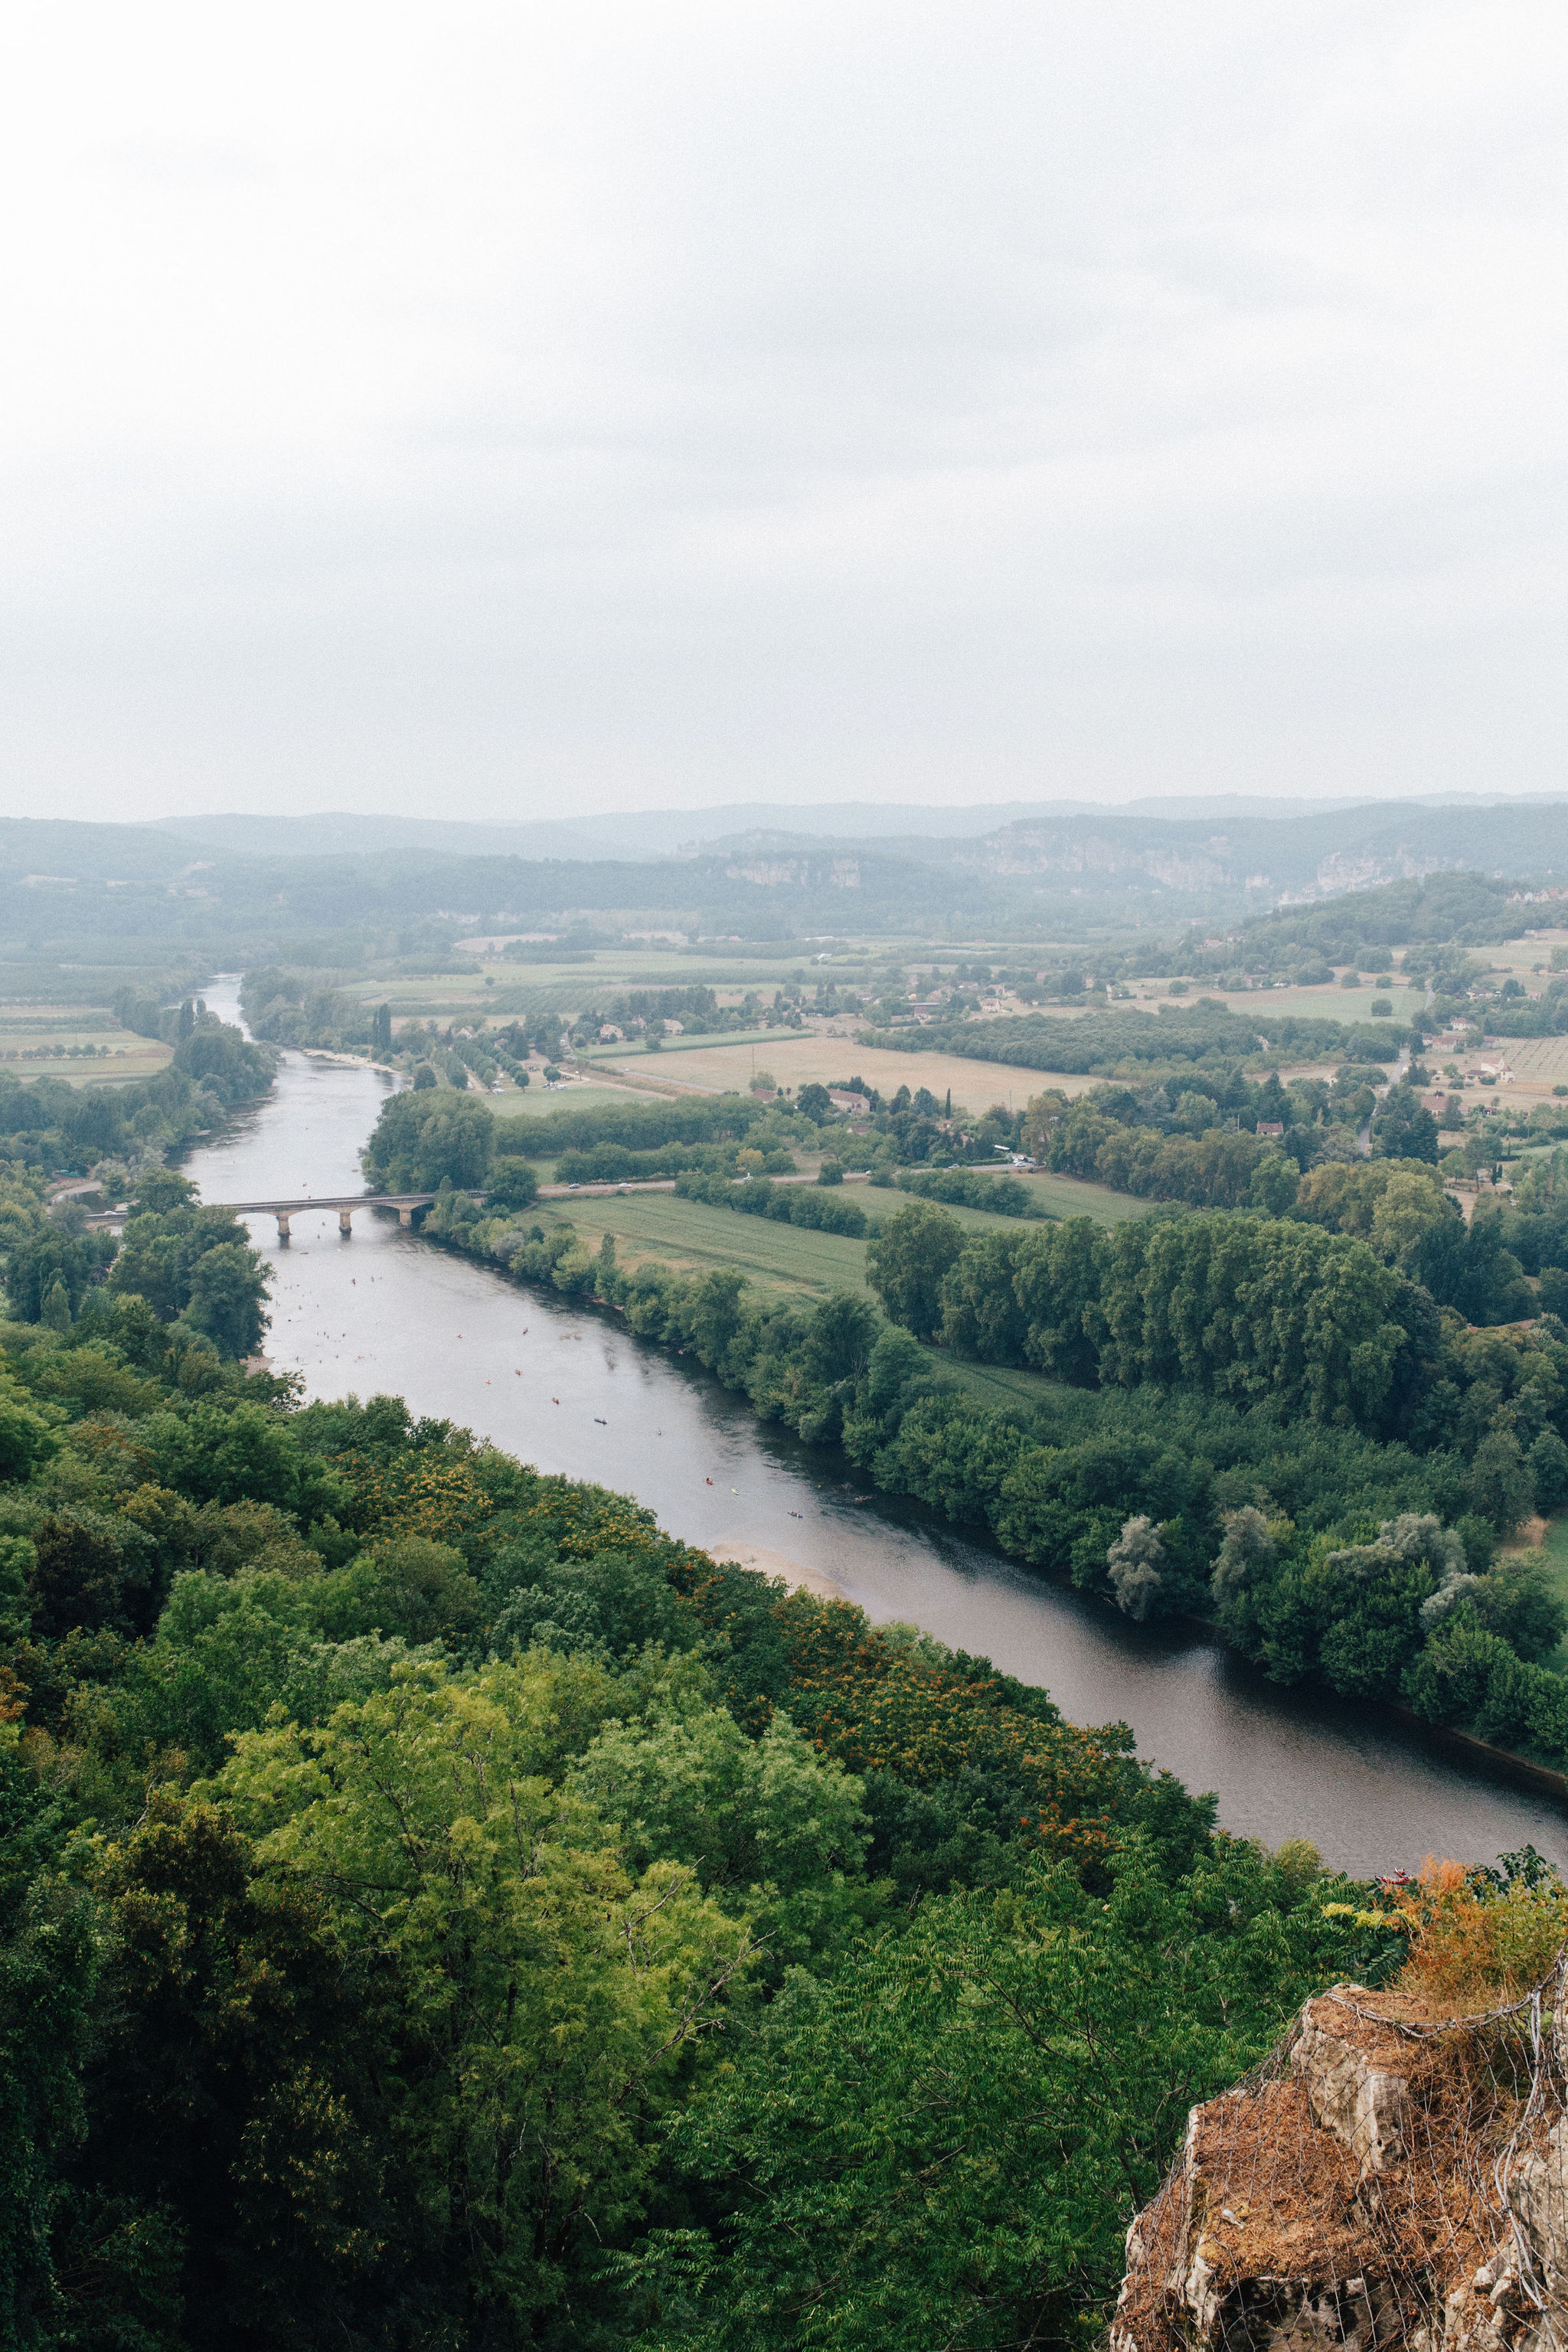 Views over the Dordogne river - Taking your breath away